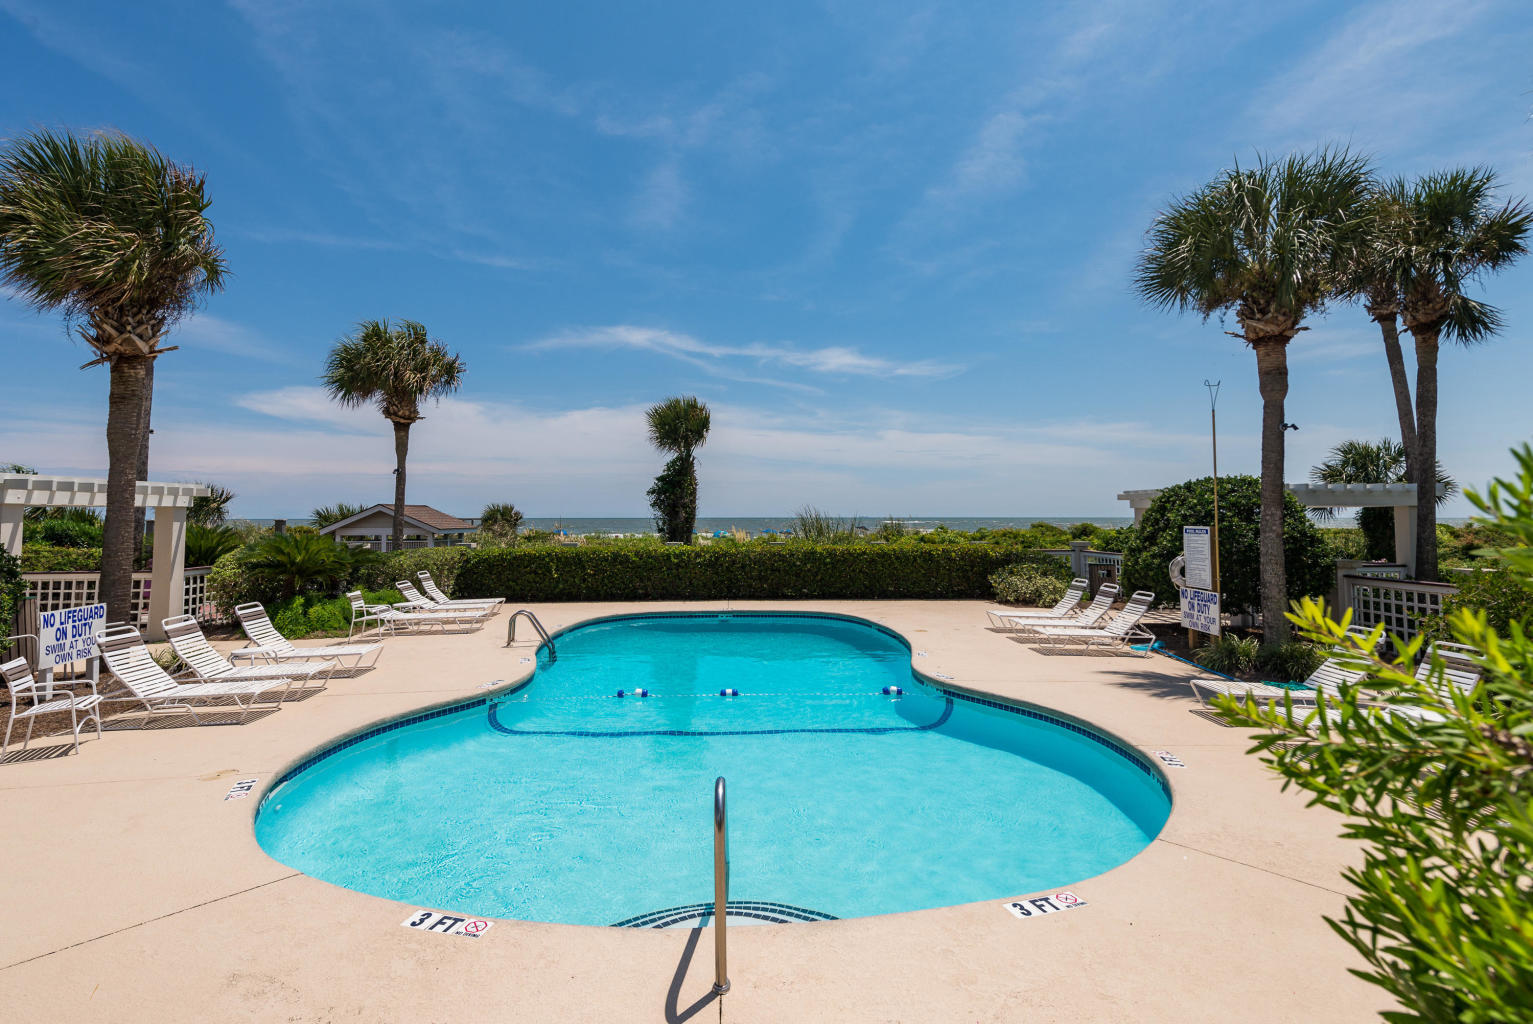 Beach Club Villas Homes For Sale - 65 Beach Club Villas, Isle of Palms, SC - 33